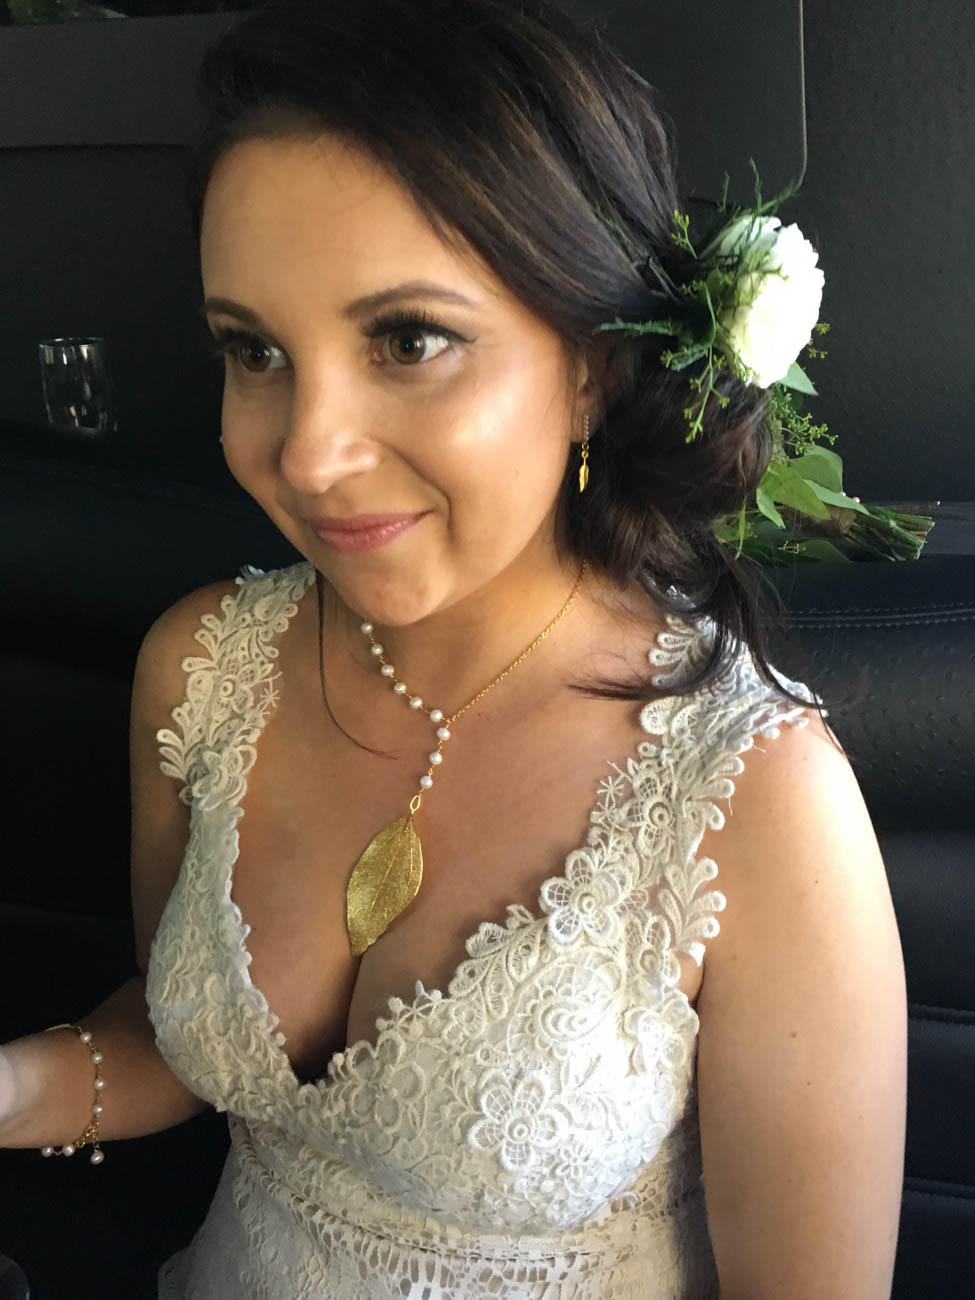 Daniella has most recently been designing personalized jewelry for brides and their bridal parties on their big day. These designs are fun and challenging to Daniella, because it is important to make the bride happy while capturing her individual style. / Image courtesy of Ella Jewelry // Published: 12.17.18<br>